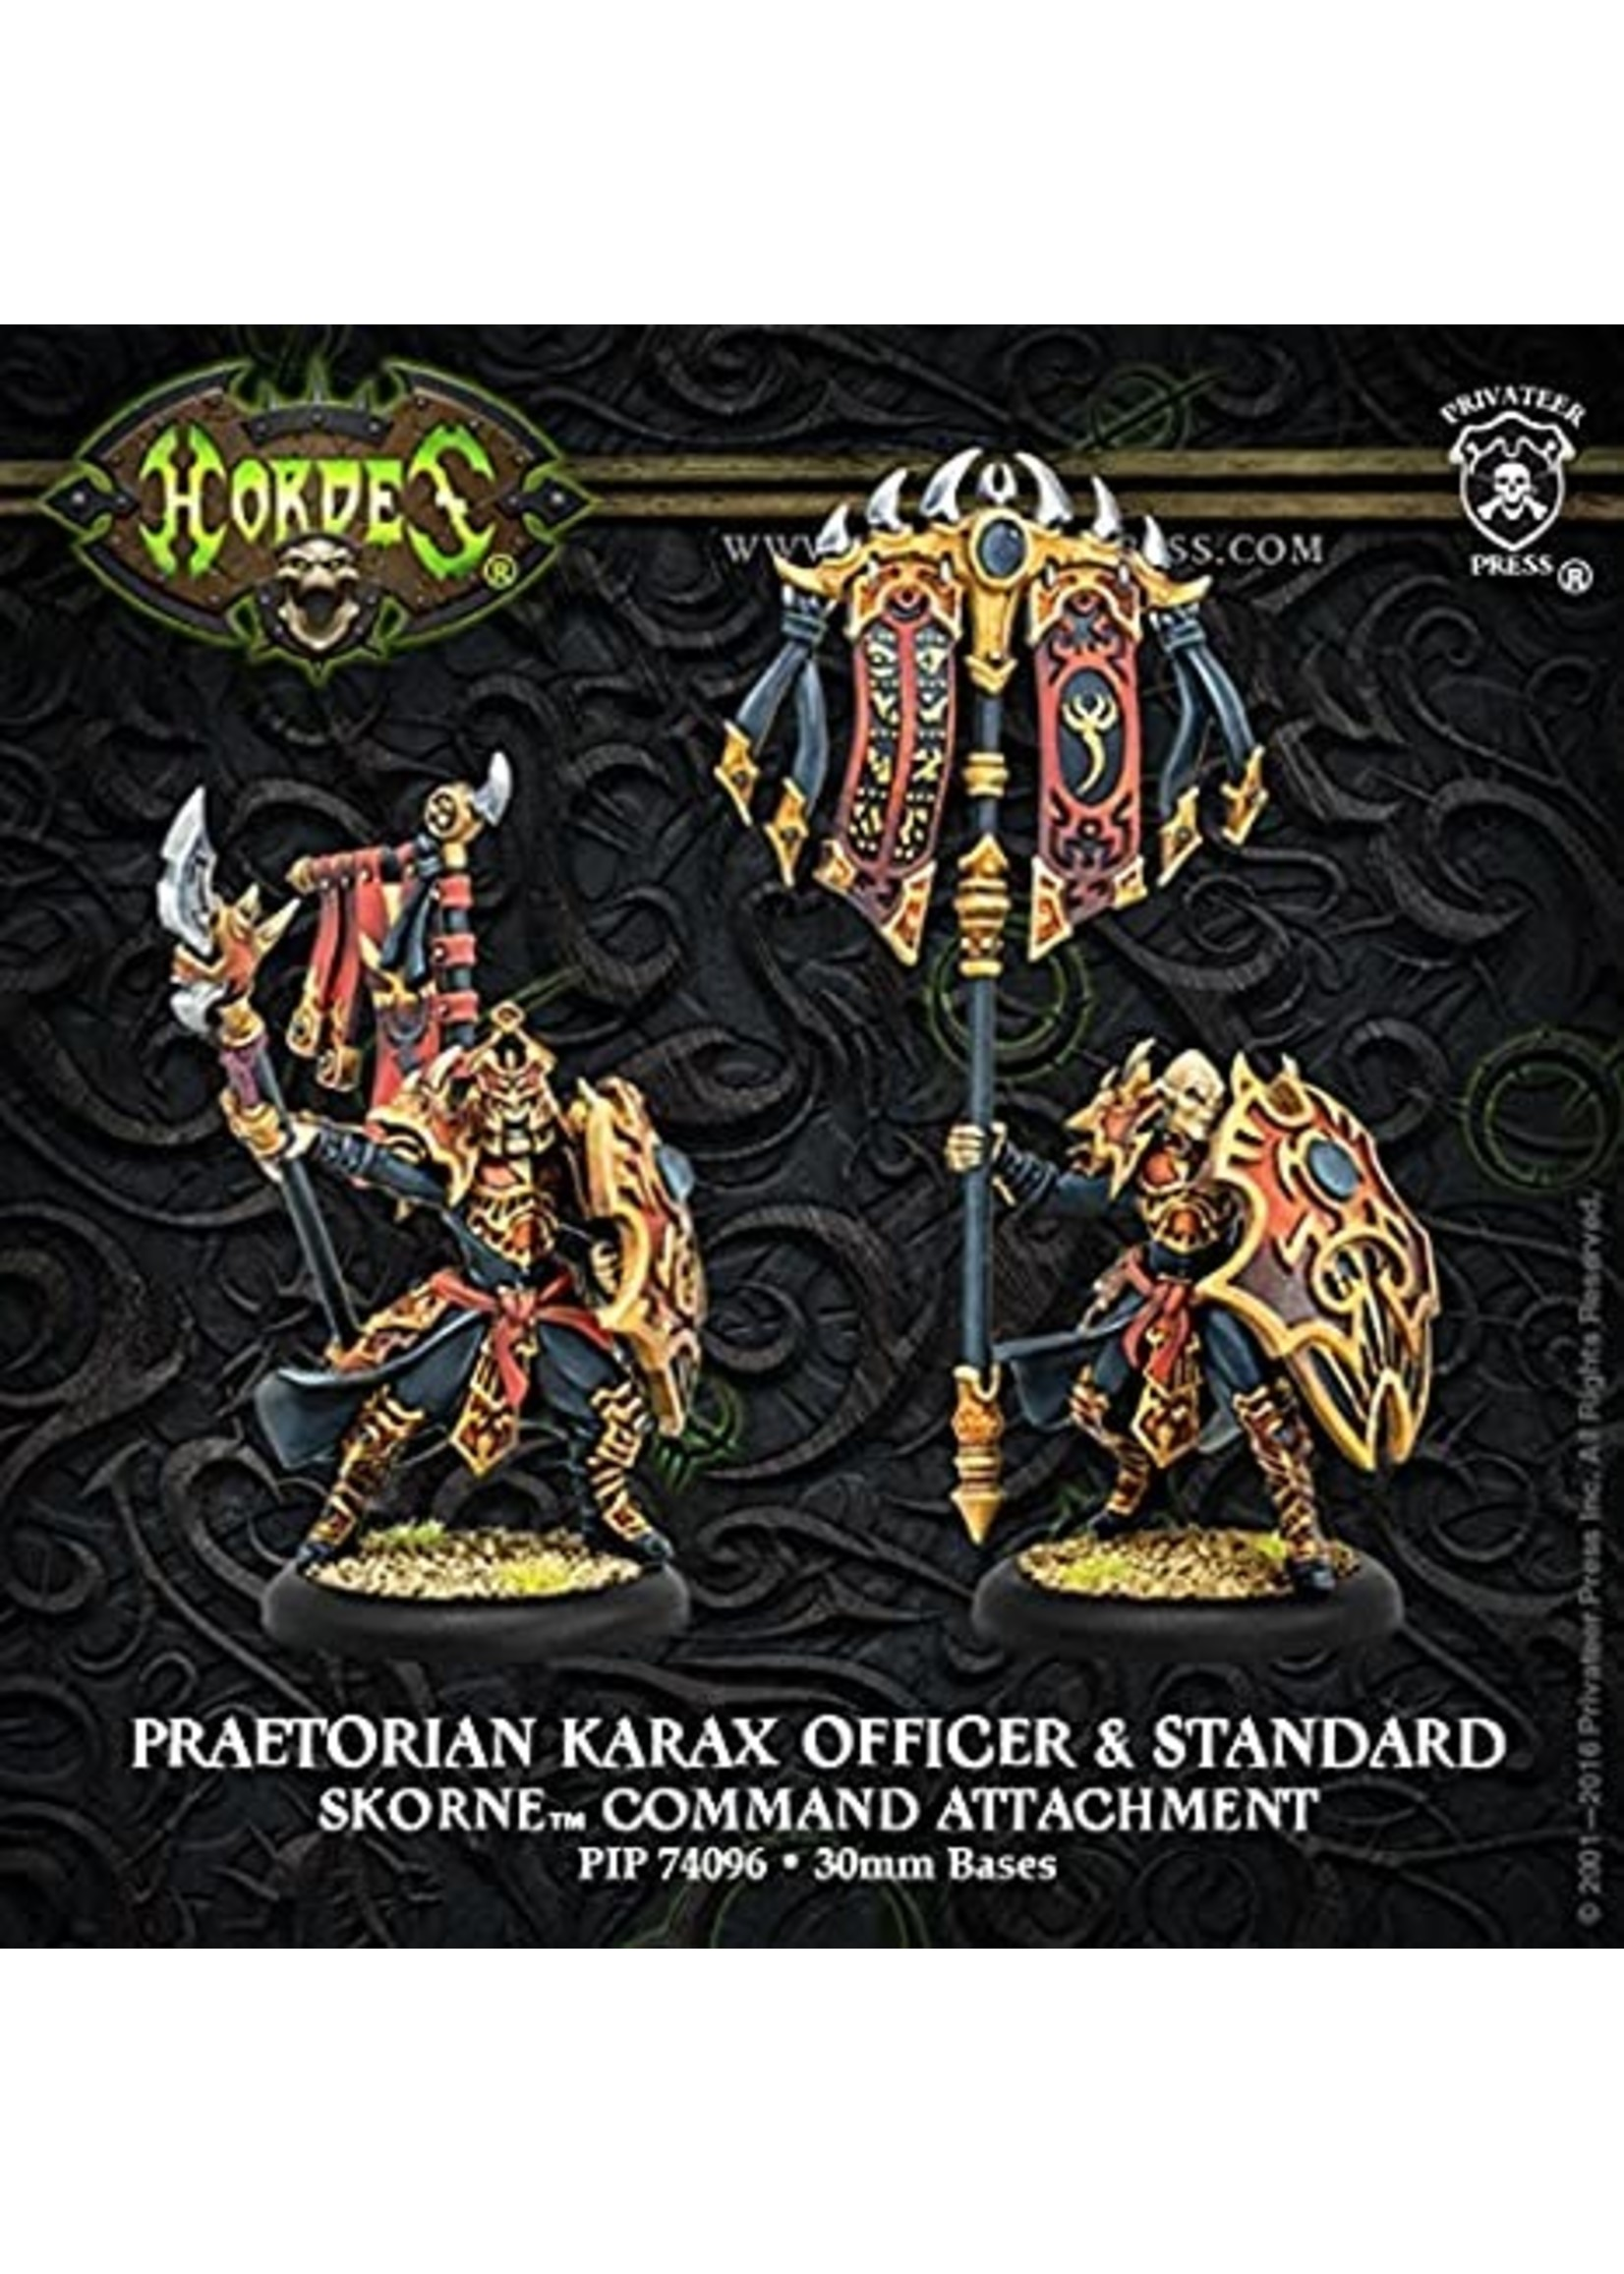 Hordes: Skorne Praetorian Karax Commander & Standard Command Attachment (Resin and White Metal)